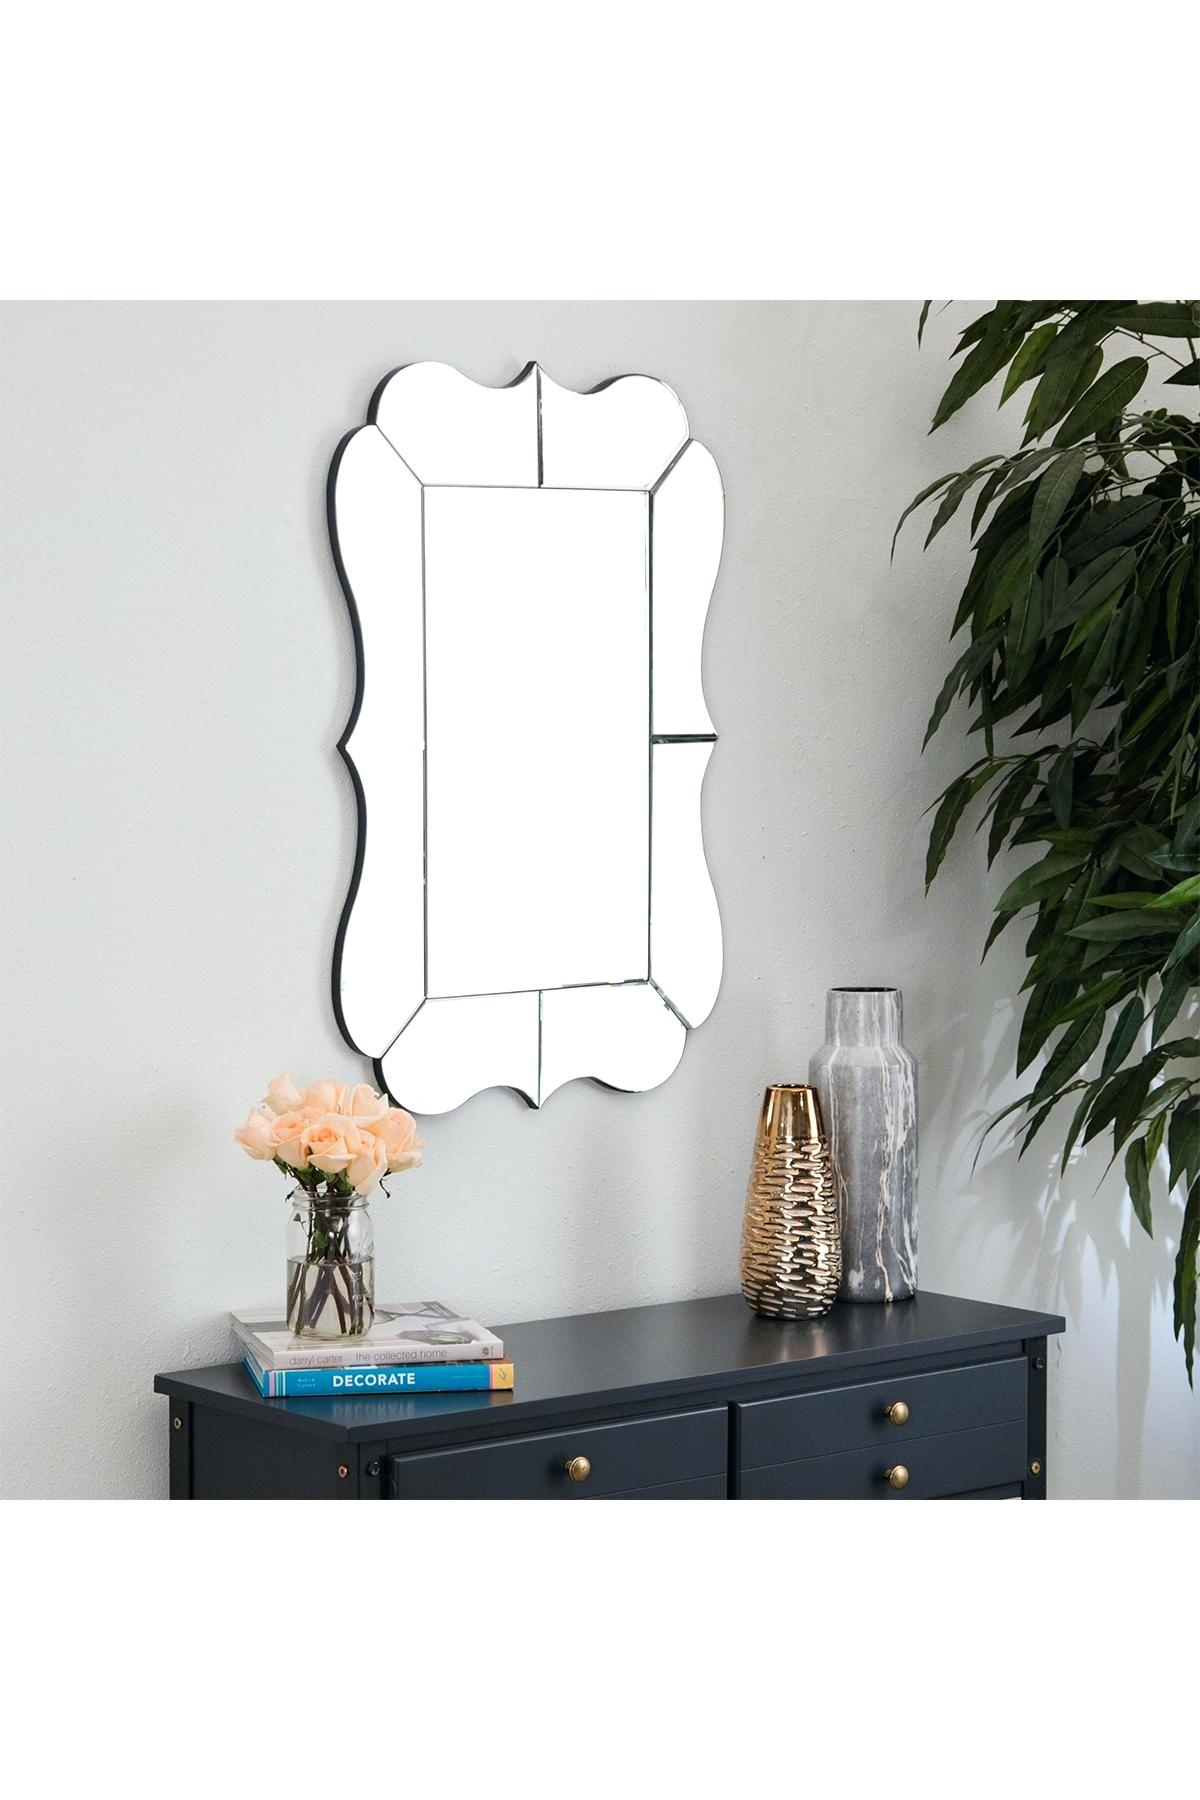 Scalloped Wall Mirror Scalloped Corner Wall Mirror Scalloped Throughout Reign Frameless Oval Scalloped Beveled Wall Mirrors (Image 20 of 20)